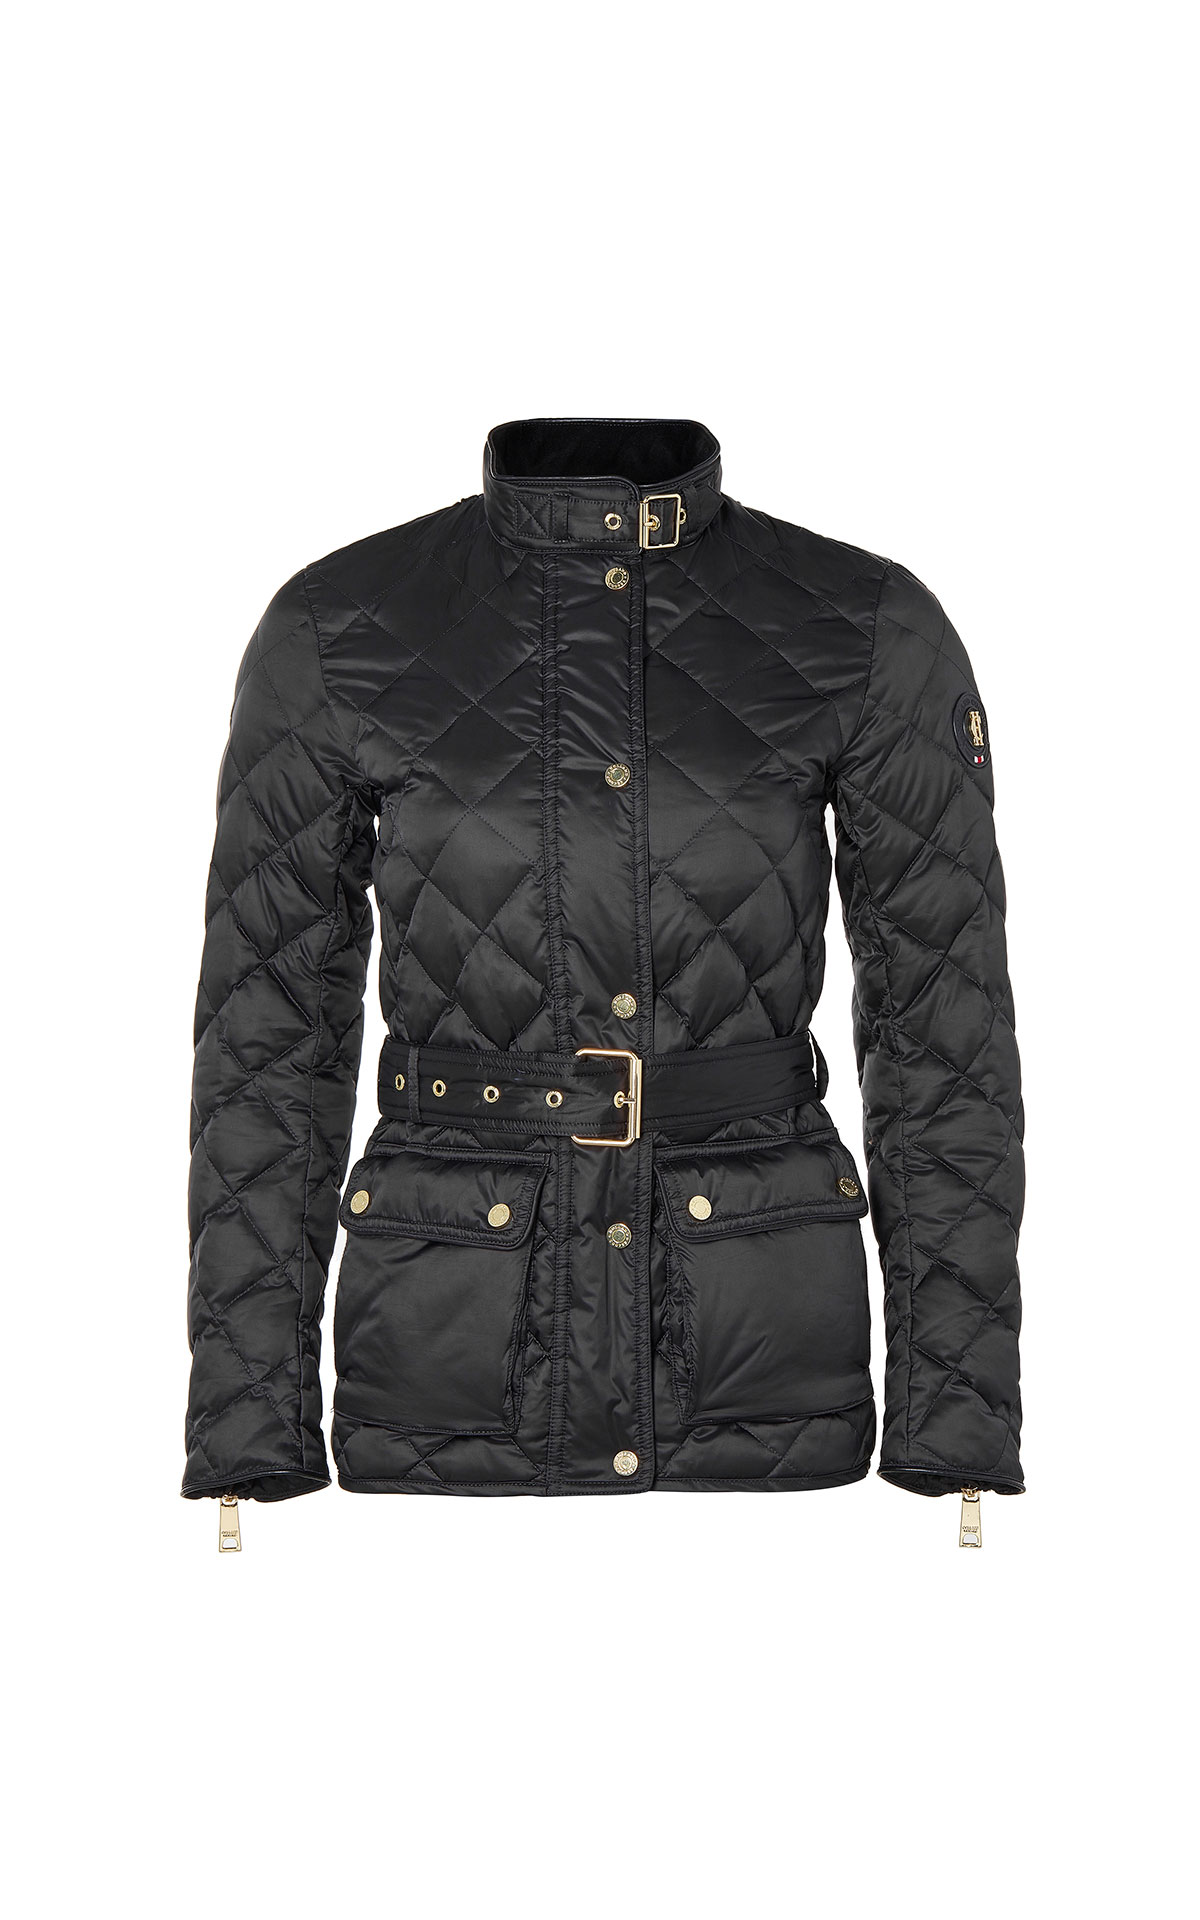 Holland Cooper Diamond quilt heritage jacket in black from Bicester Village